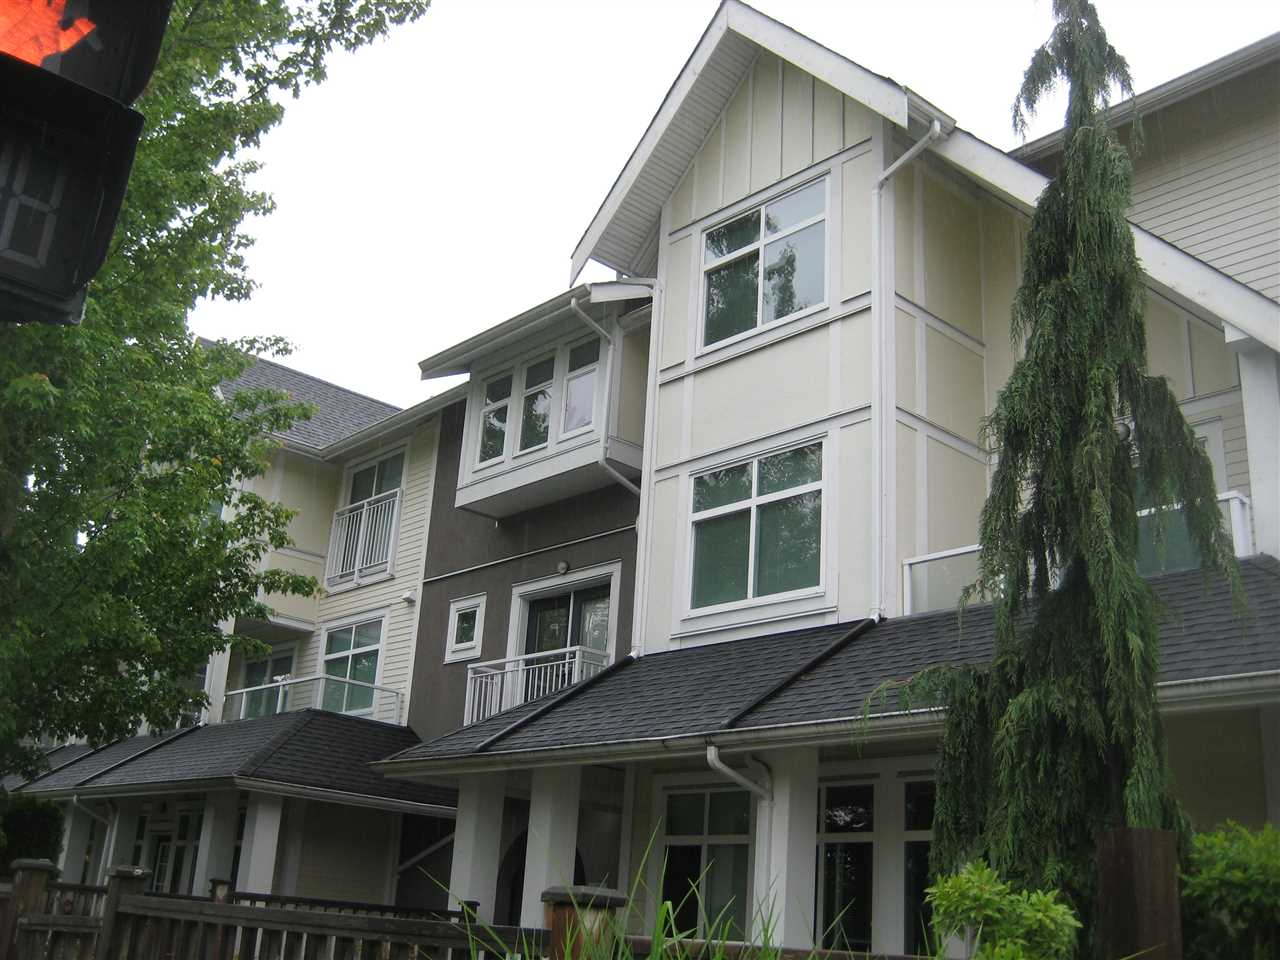 23 6965 HASTINGS STREET - Sperling-Duthie Apartment/Condo for sale, 2 Bedrooms (R2482053) - #1